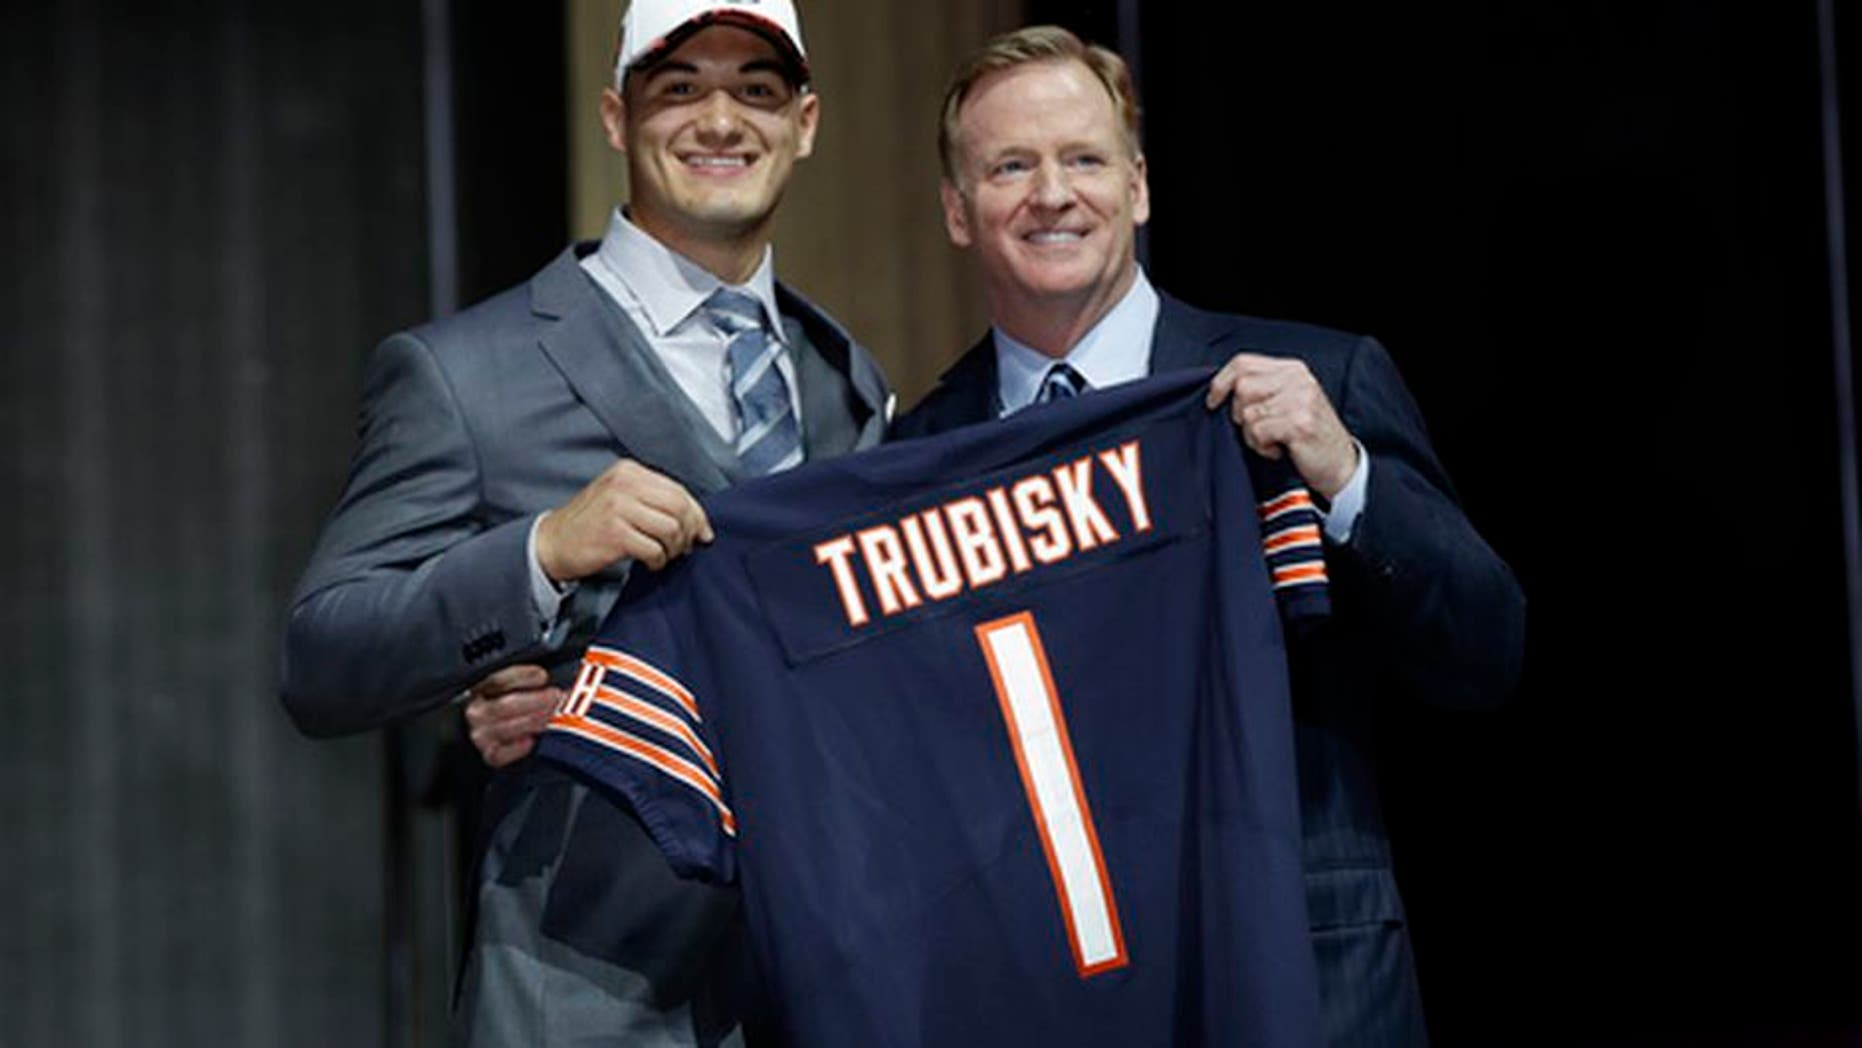 North Carolina's Mitch Trubisky, left, poses with NFL commissioner Roger Goodell after being selected by the Chicago Bears during the first round of the 2017 NFL football draft, Thursday, April 27, 2017, in Philadelphia. (AP Photo/Matt Rourke)